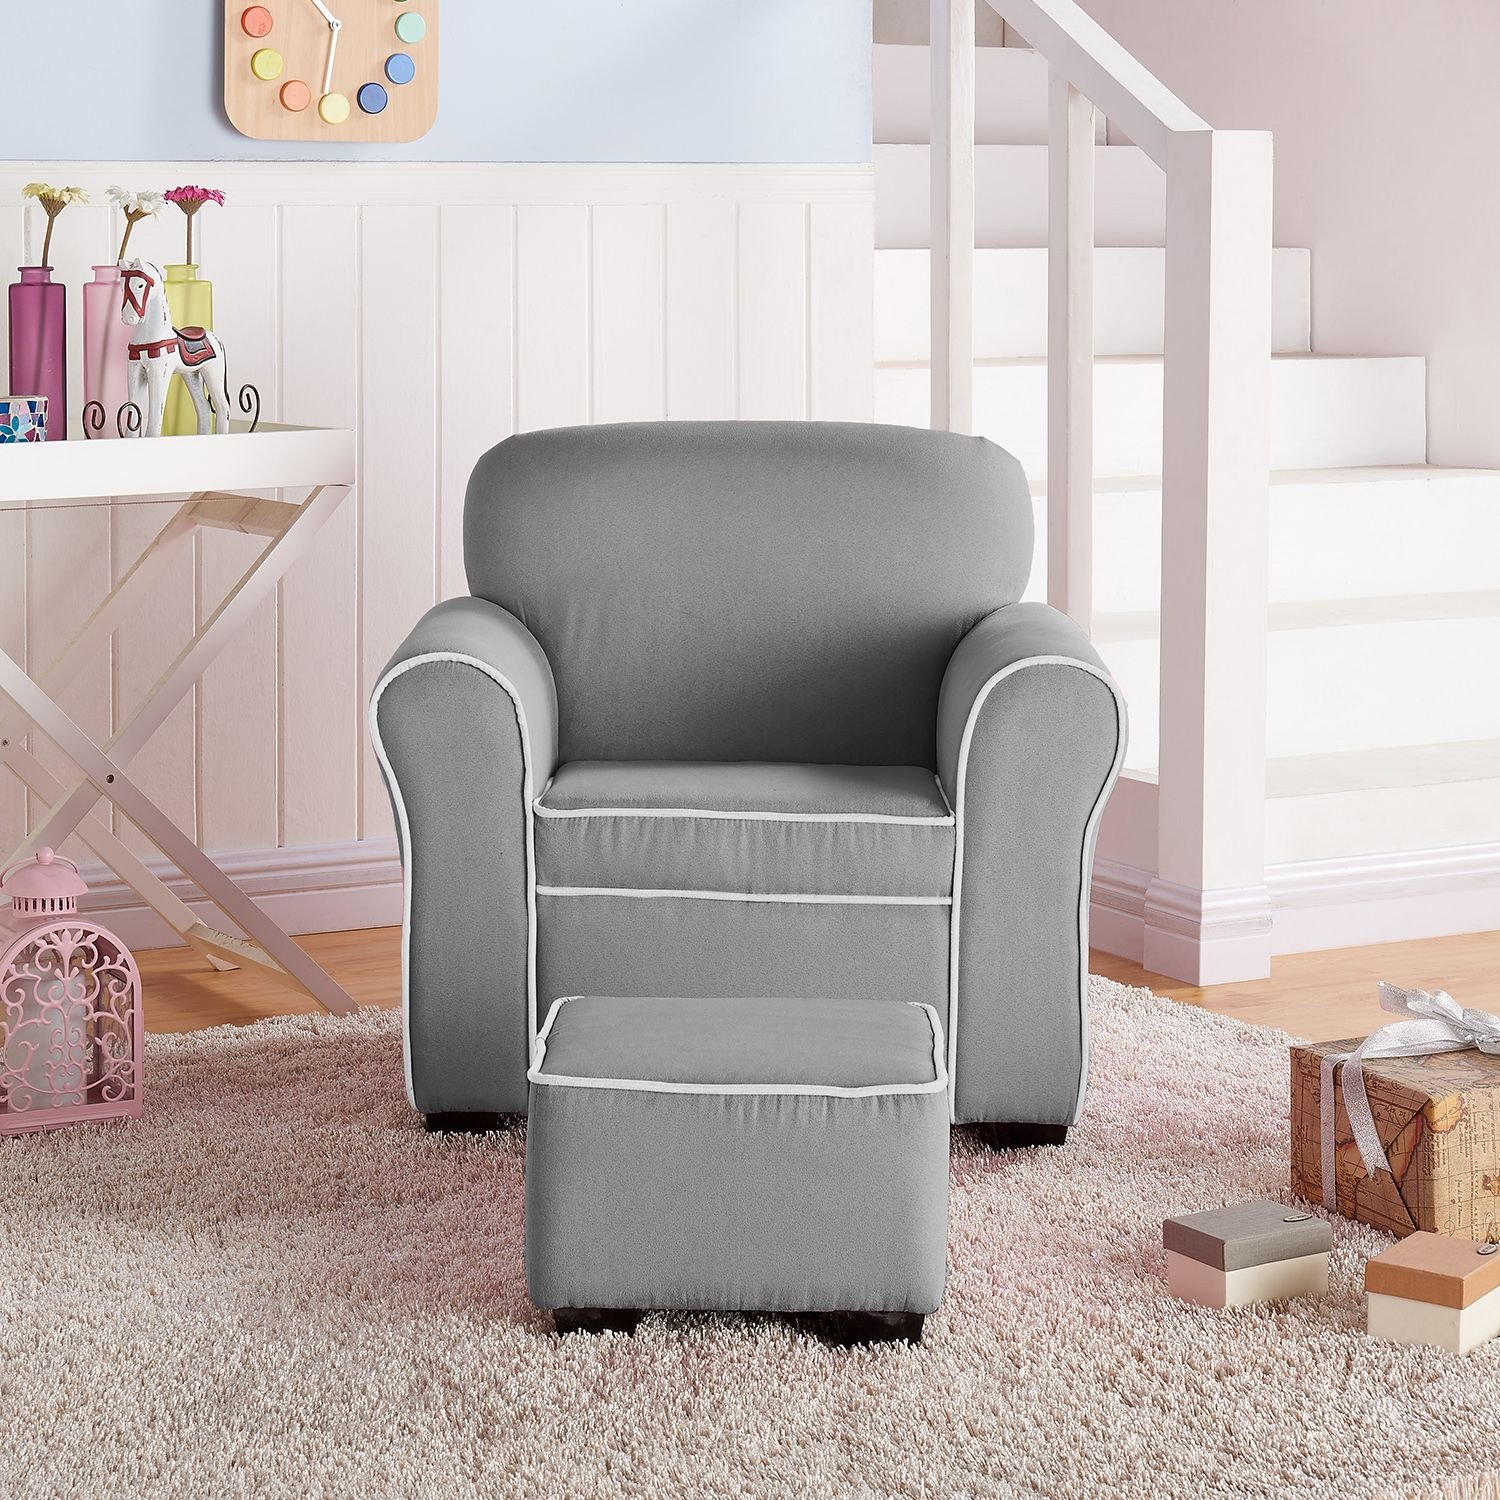 Member's Mark Kids' Chair and Ottoman, Gray